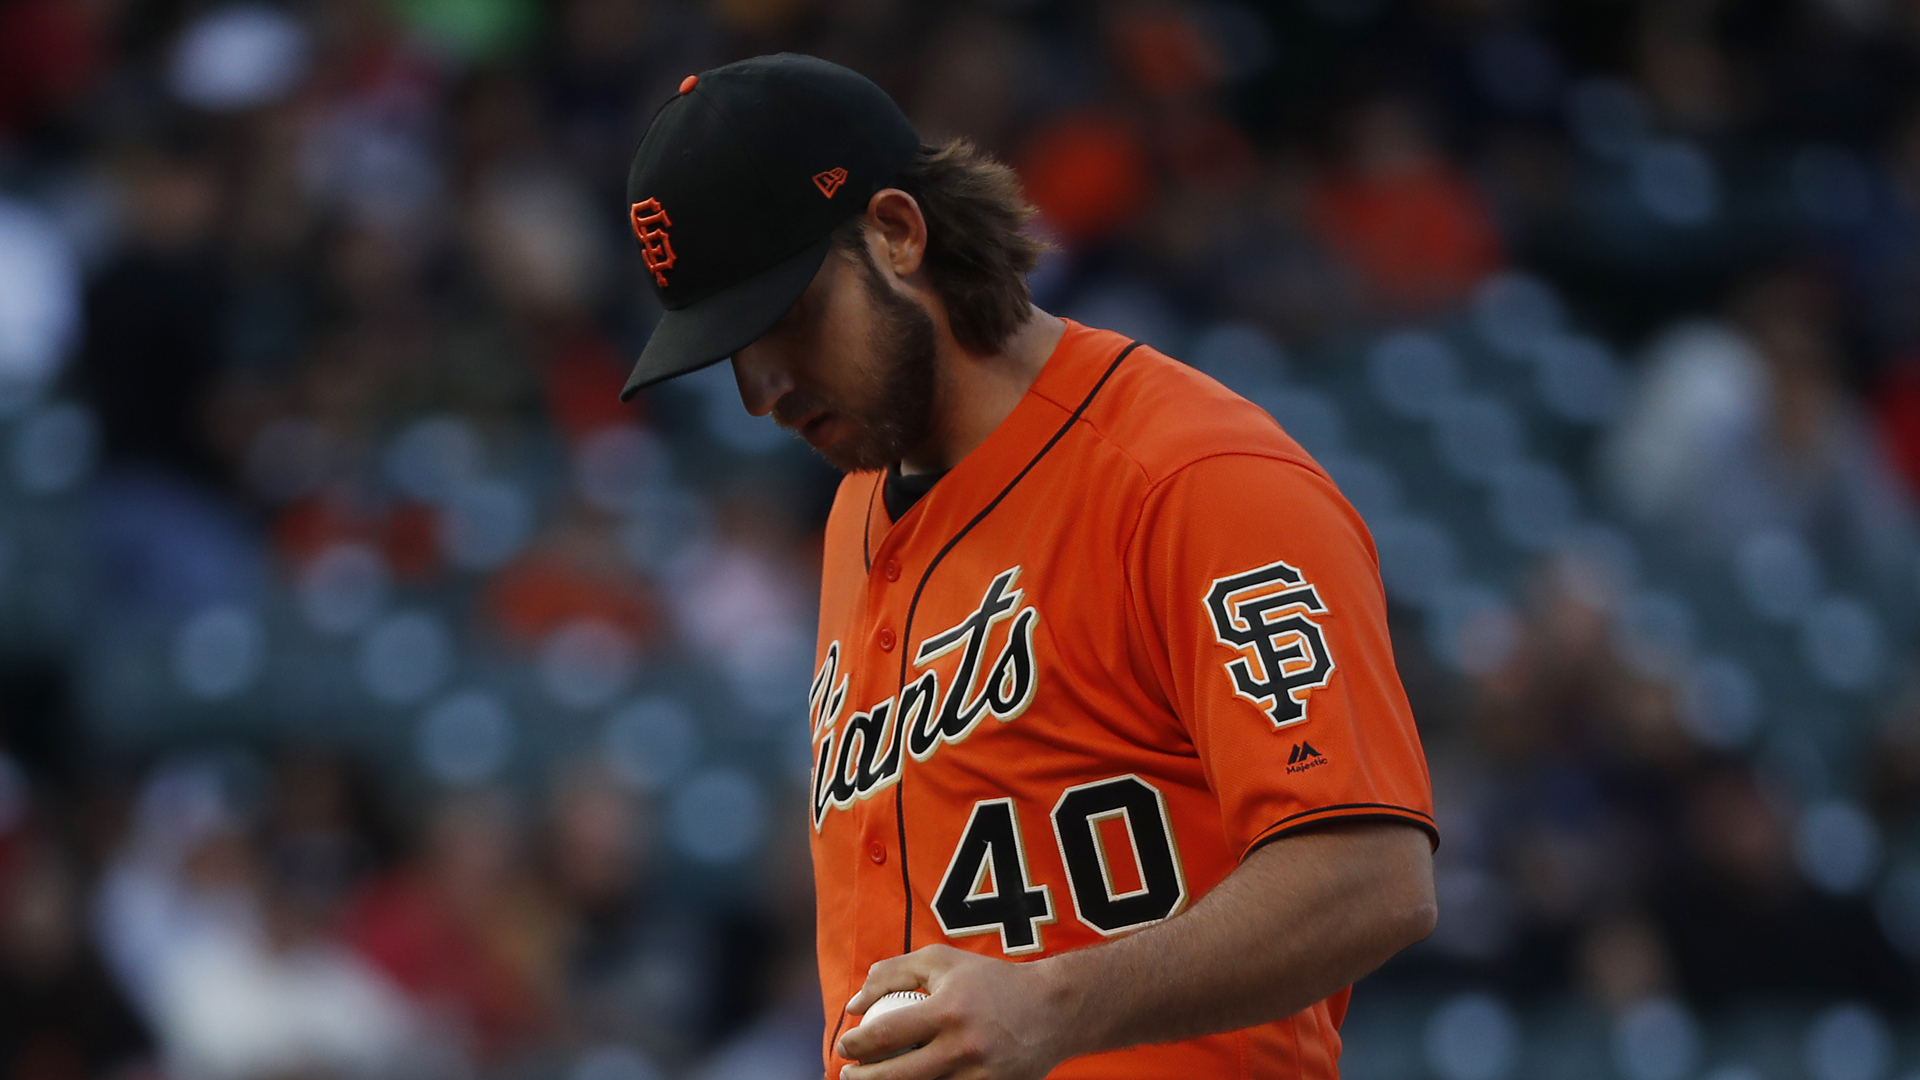 Giants' Madison Bumgarner reportedly has fractured throwing hand